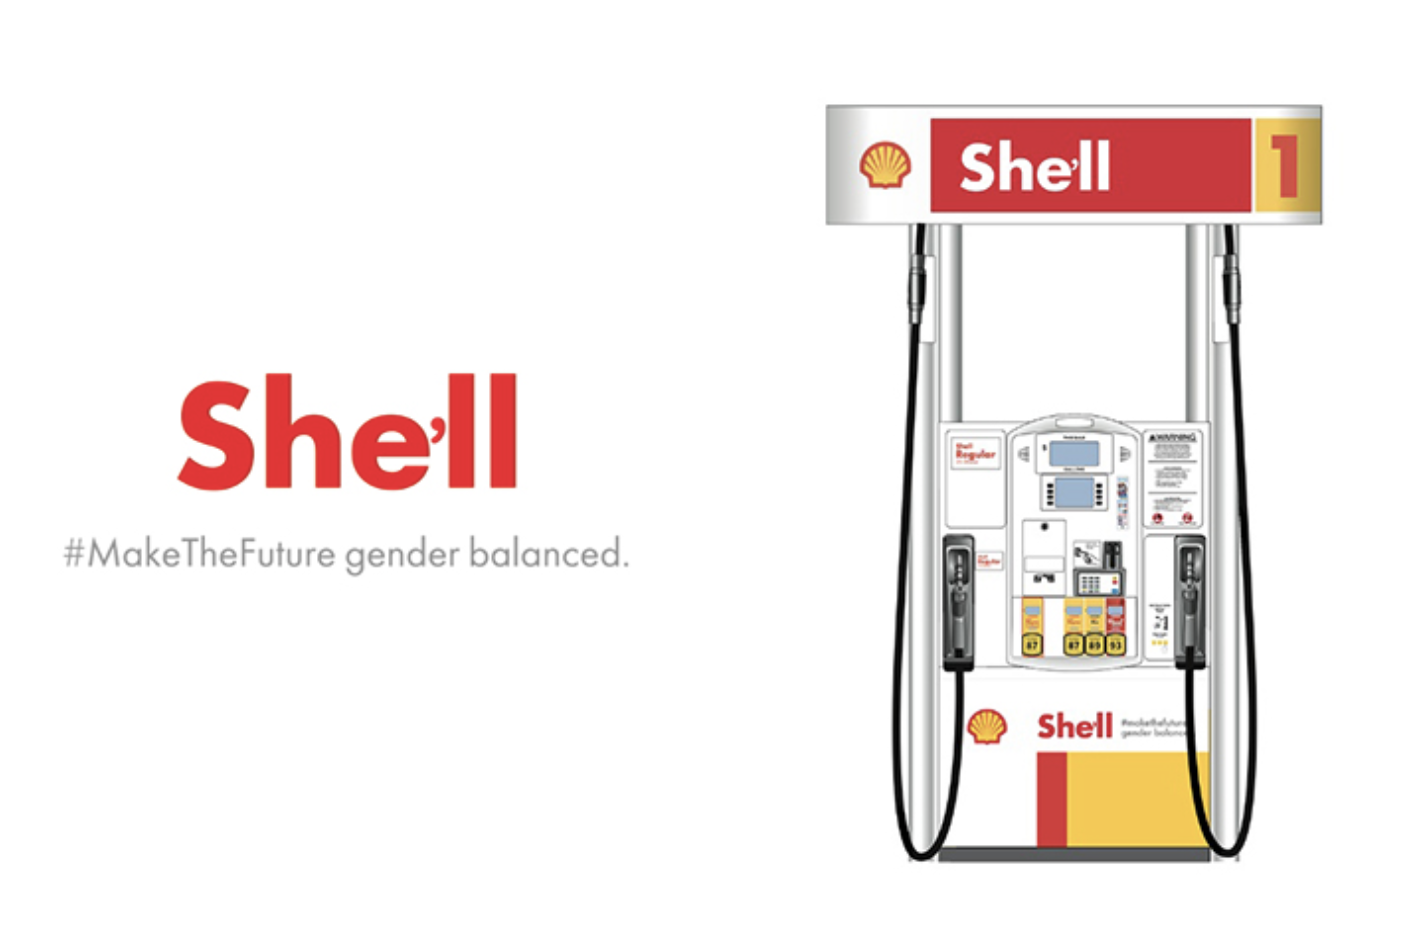 Shell - She will - issue advertisement